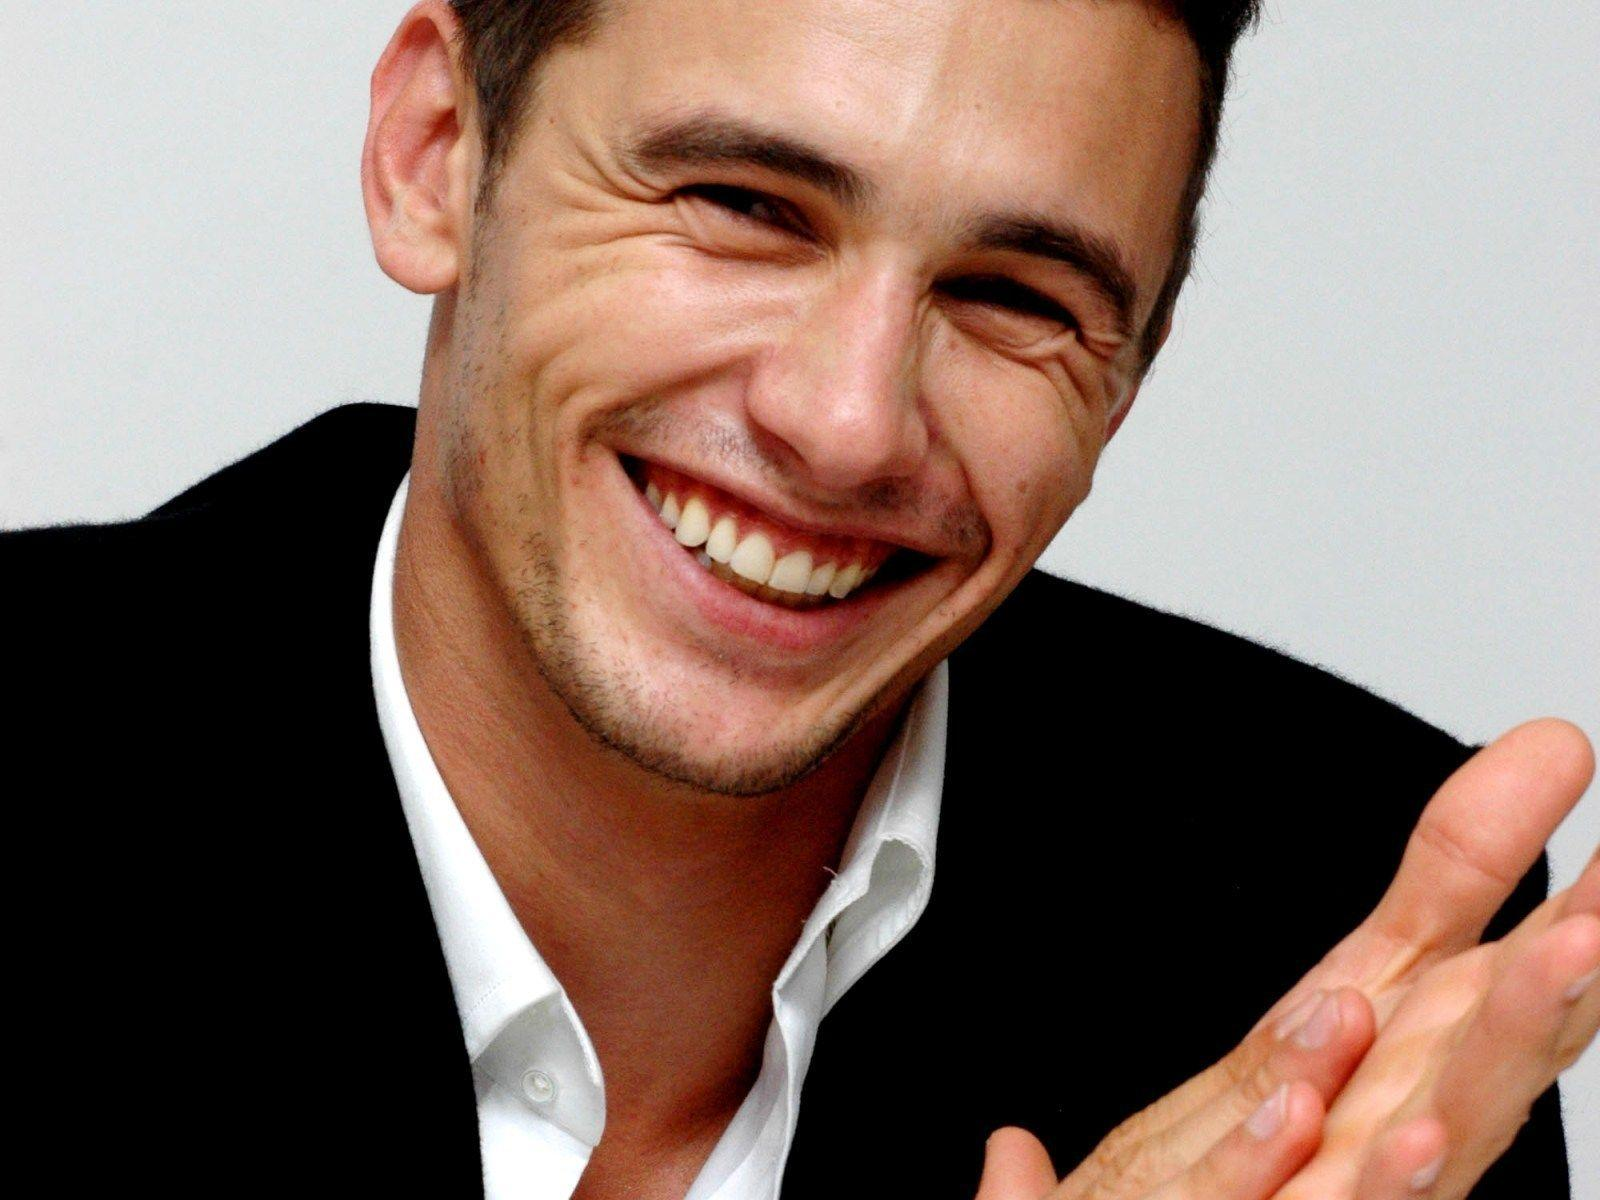 Totally Inappropriate Pick Up Lines Inspired By James Franco&